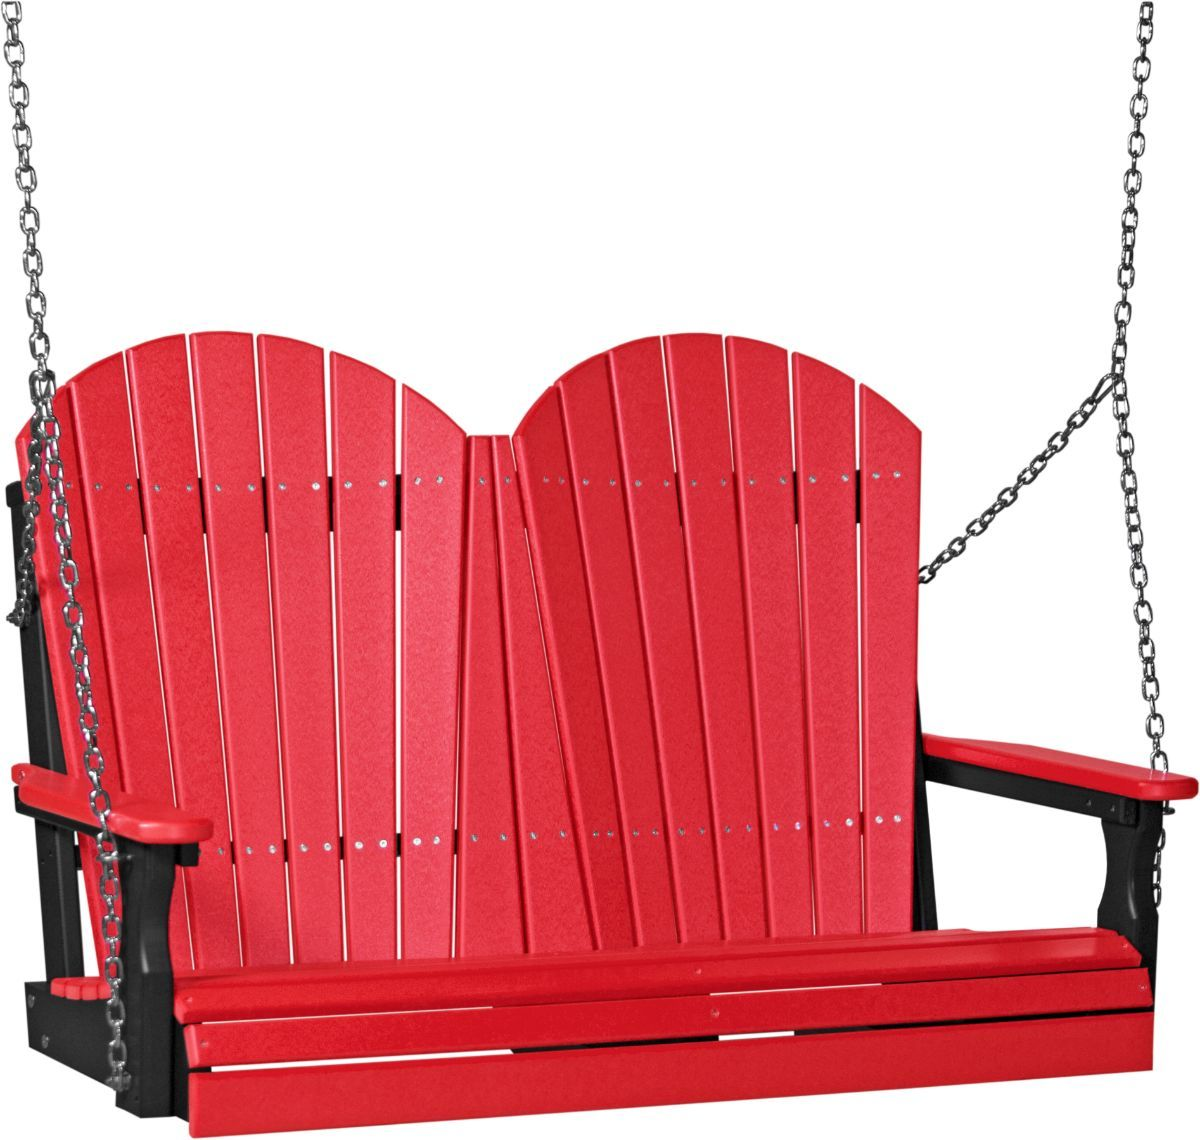 Red and Black Tahiti Adirondack Porch Swing